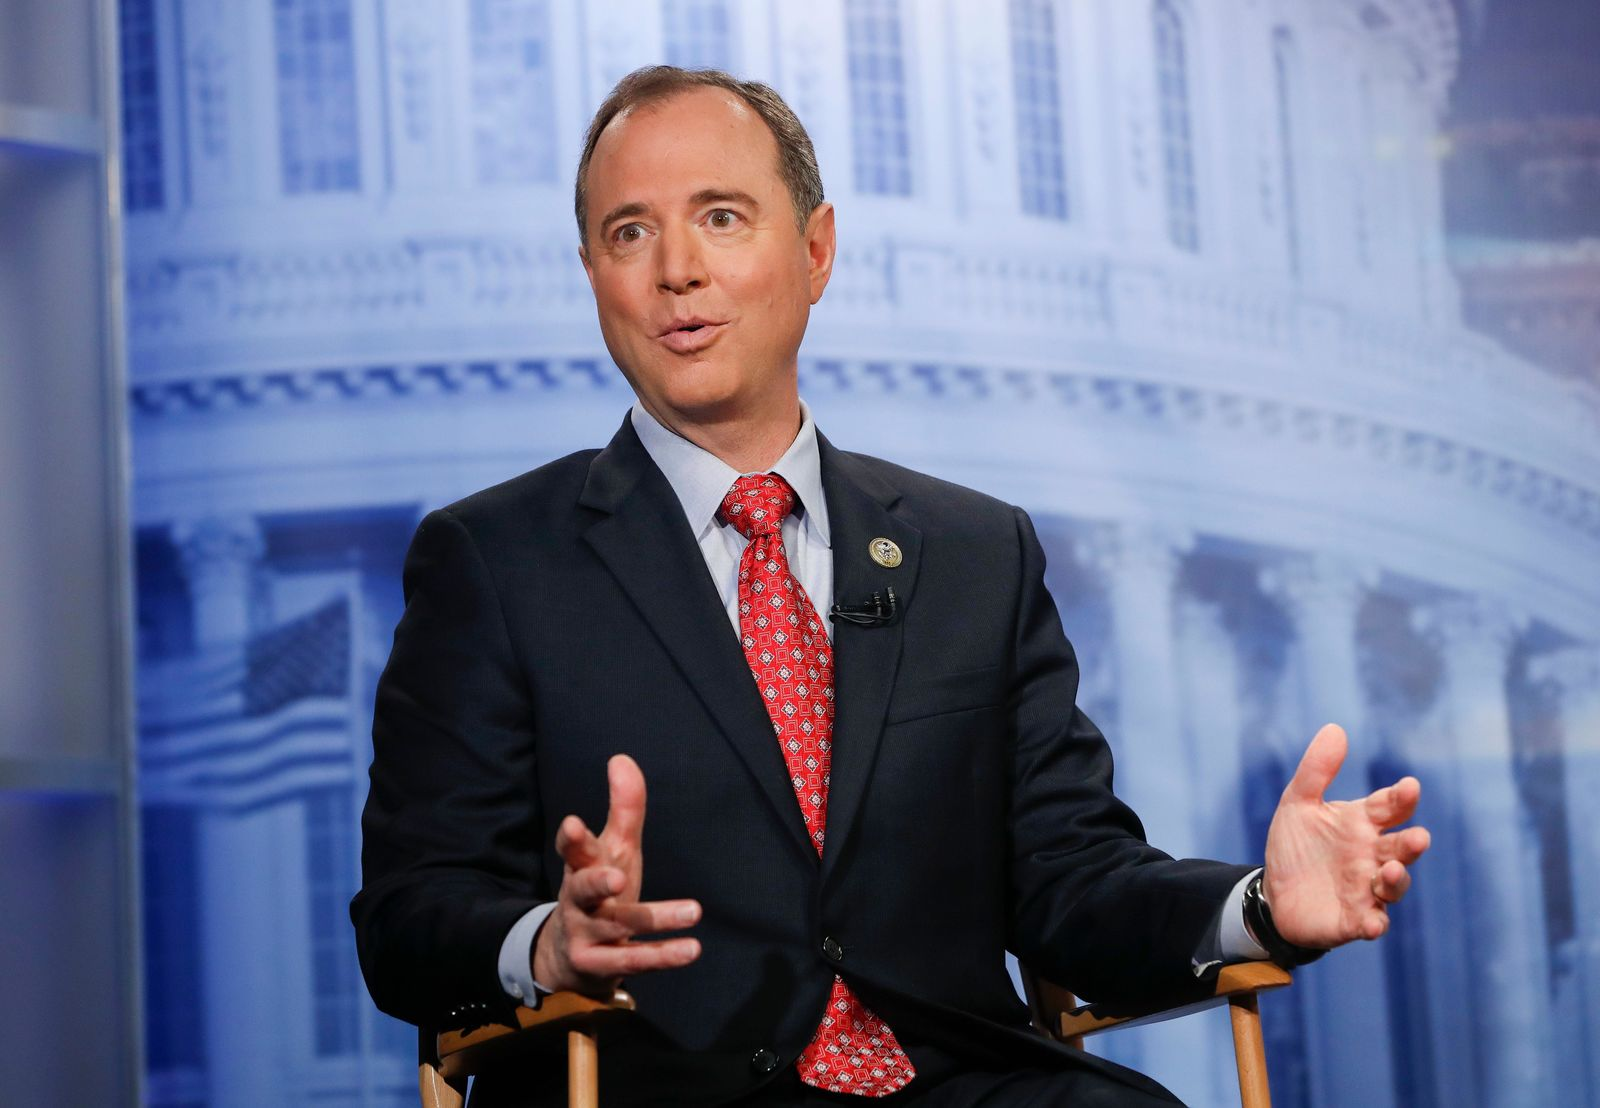 FILE - In this Nov. 7, 2017 file photo, Rep. Adam Schiff, D-Calf., answers questions during an interview at the Associated Press bureau in Washington. (AP Photo/Pablo Martinez Monsivais )